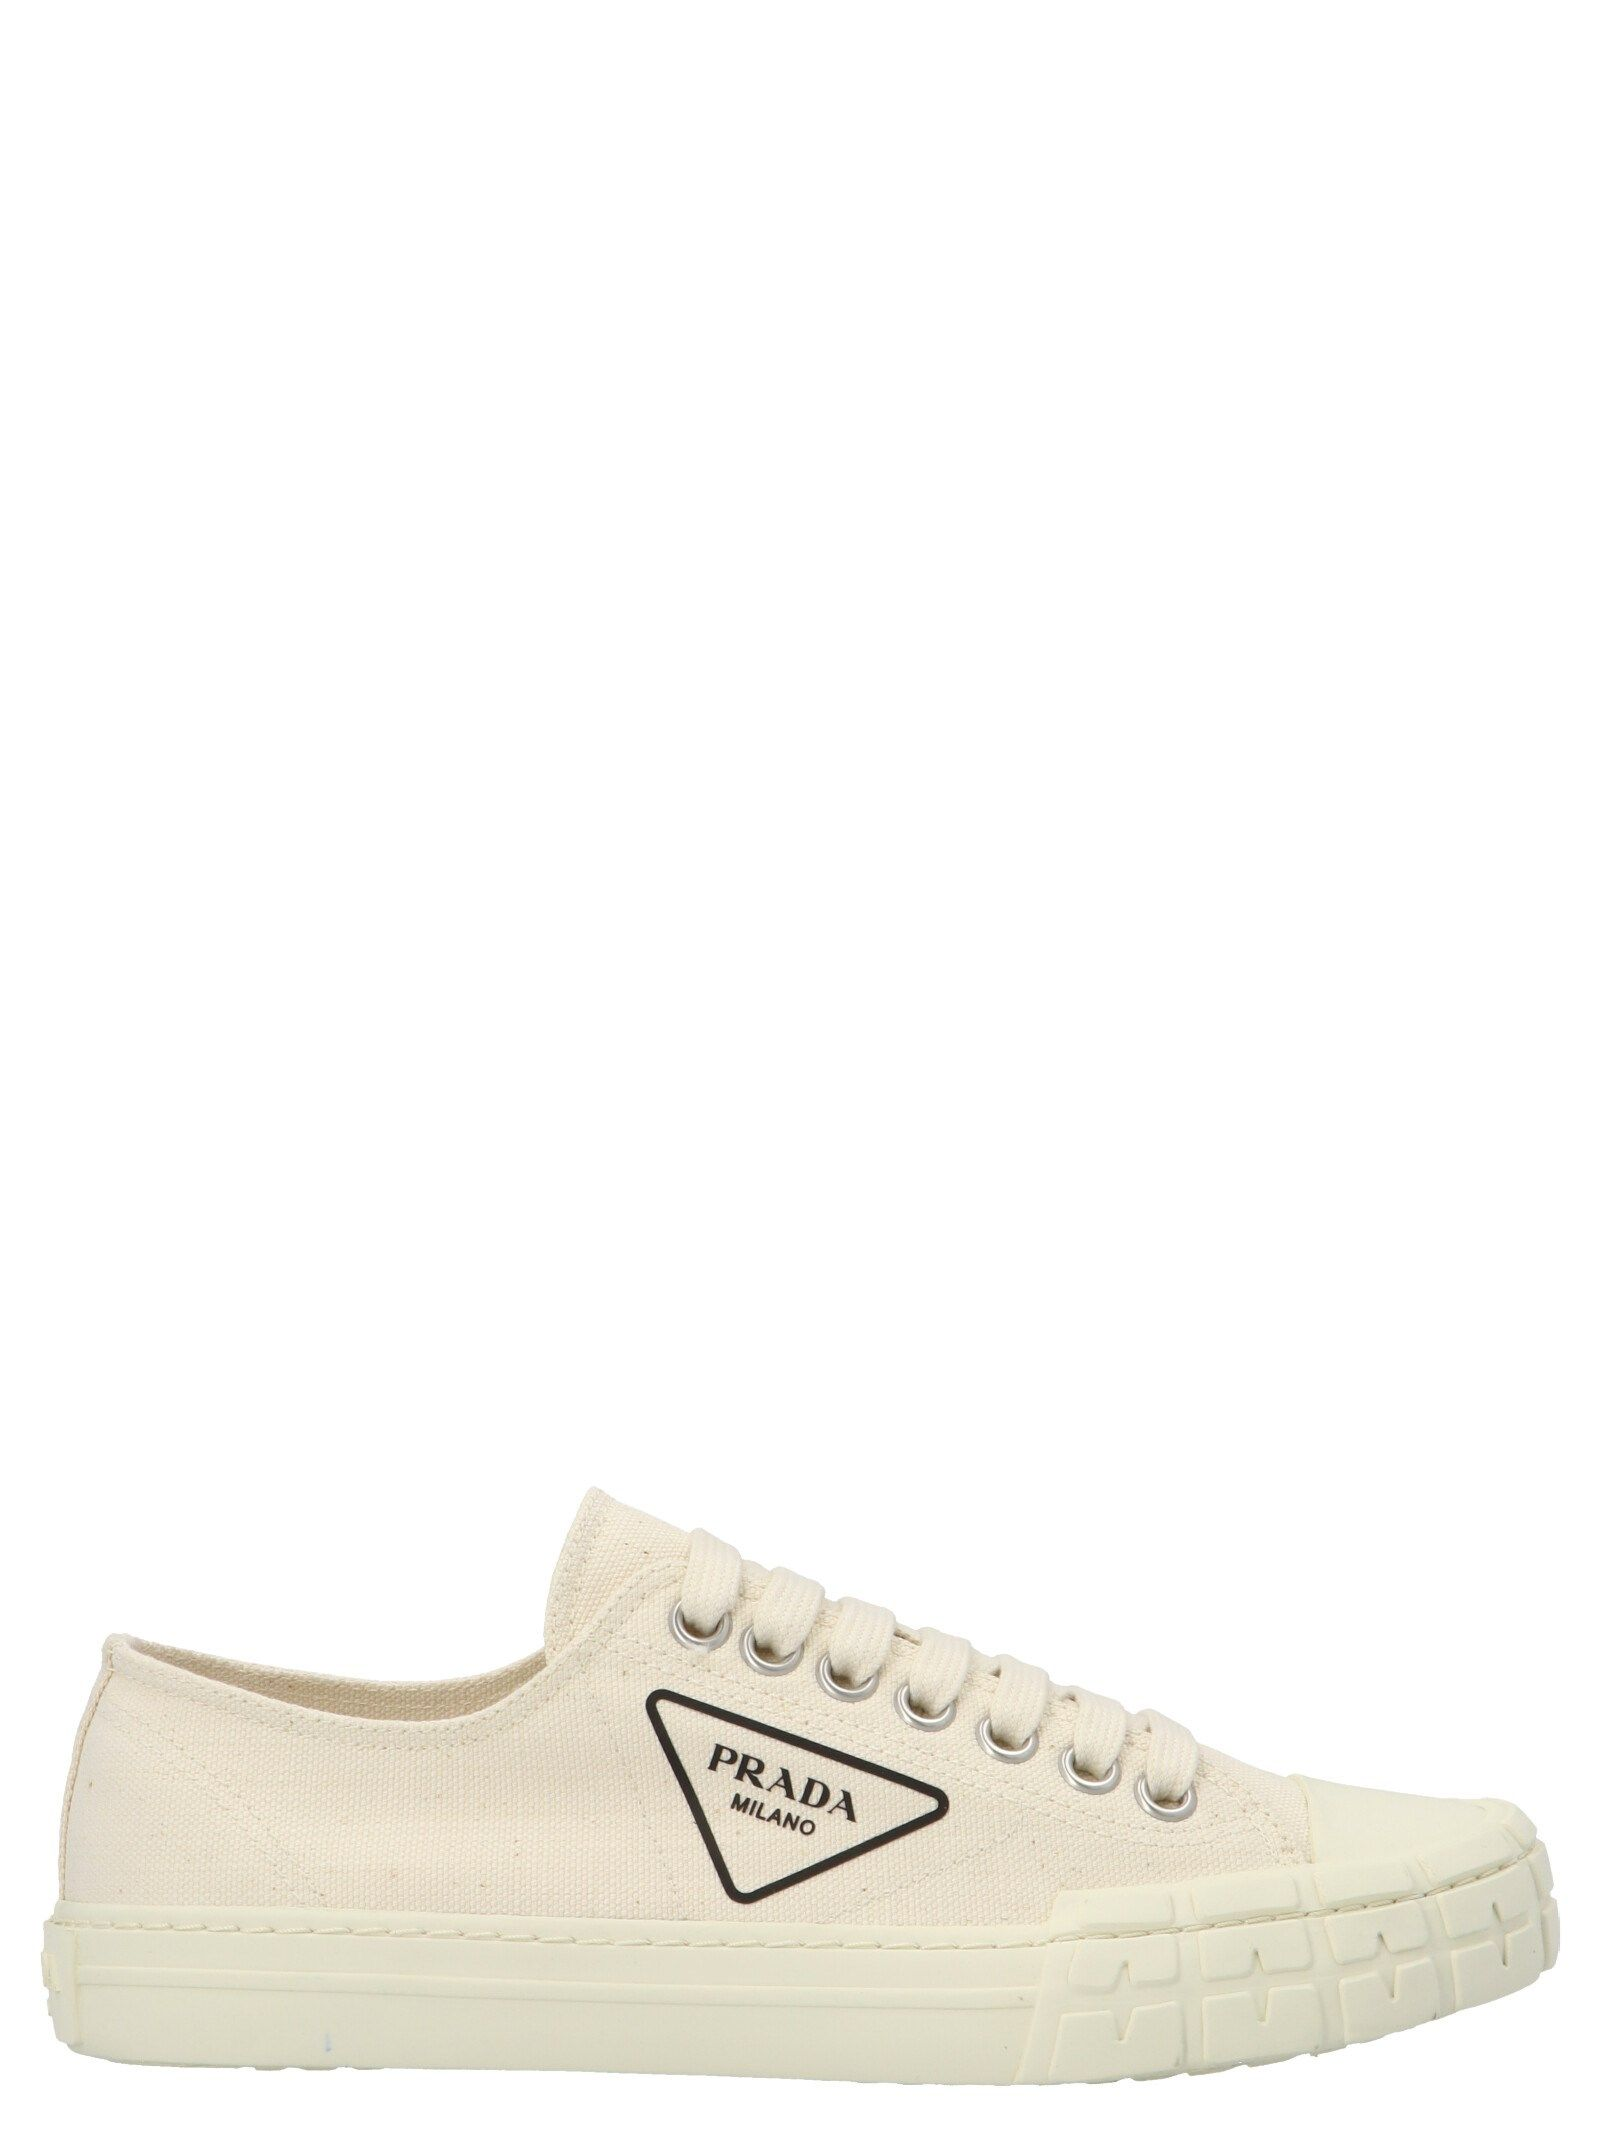 Prada PRADA MEN'S WHITE OTHER MATERIALS SNEAKERS